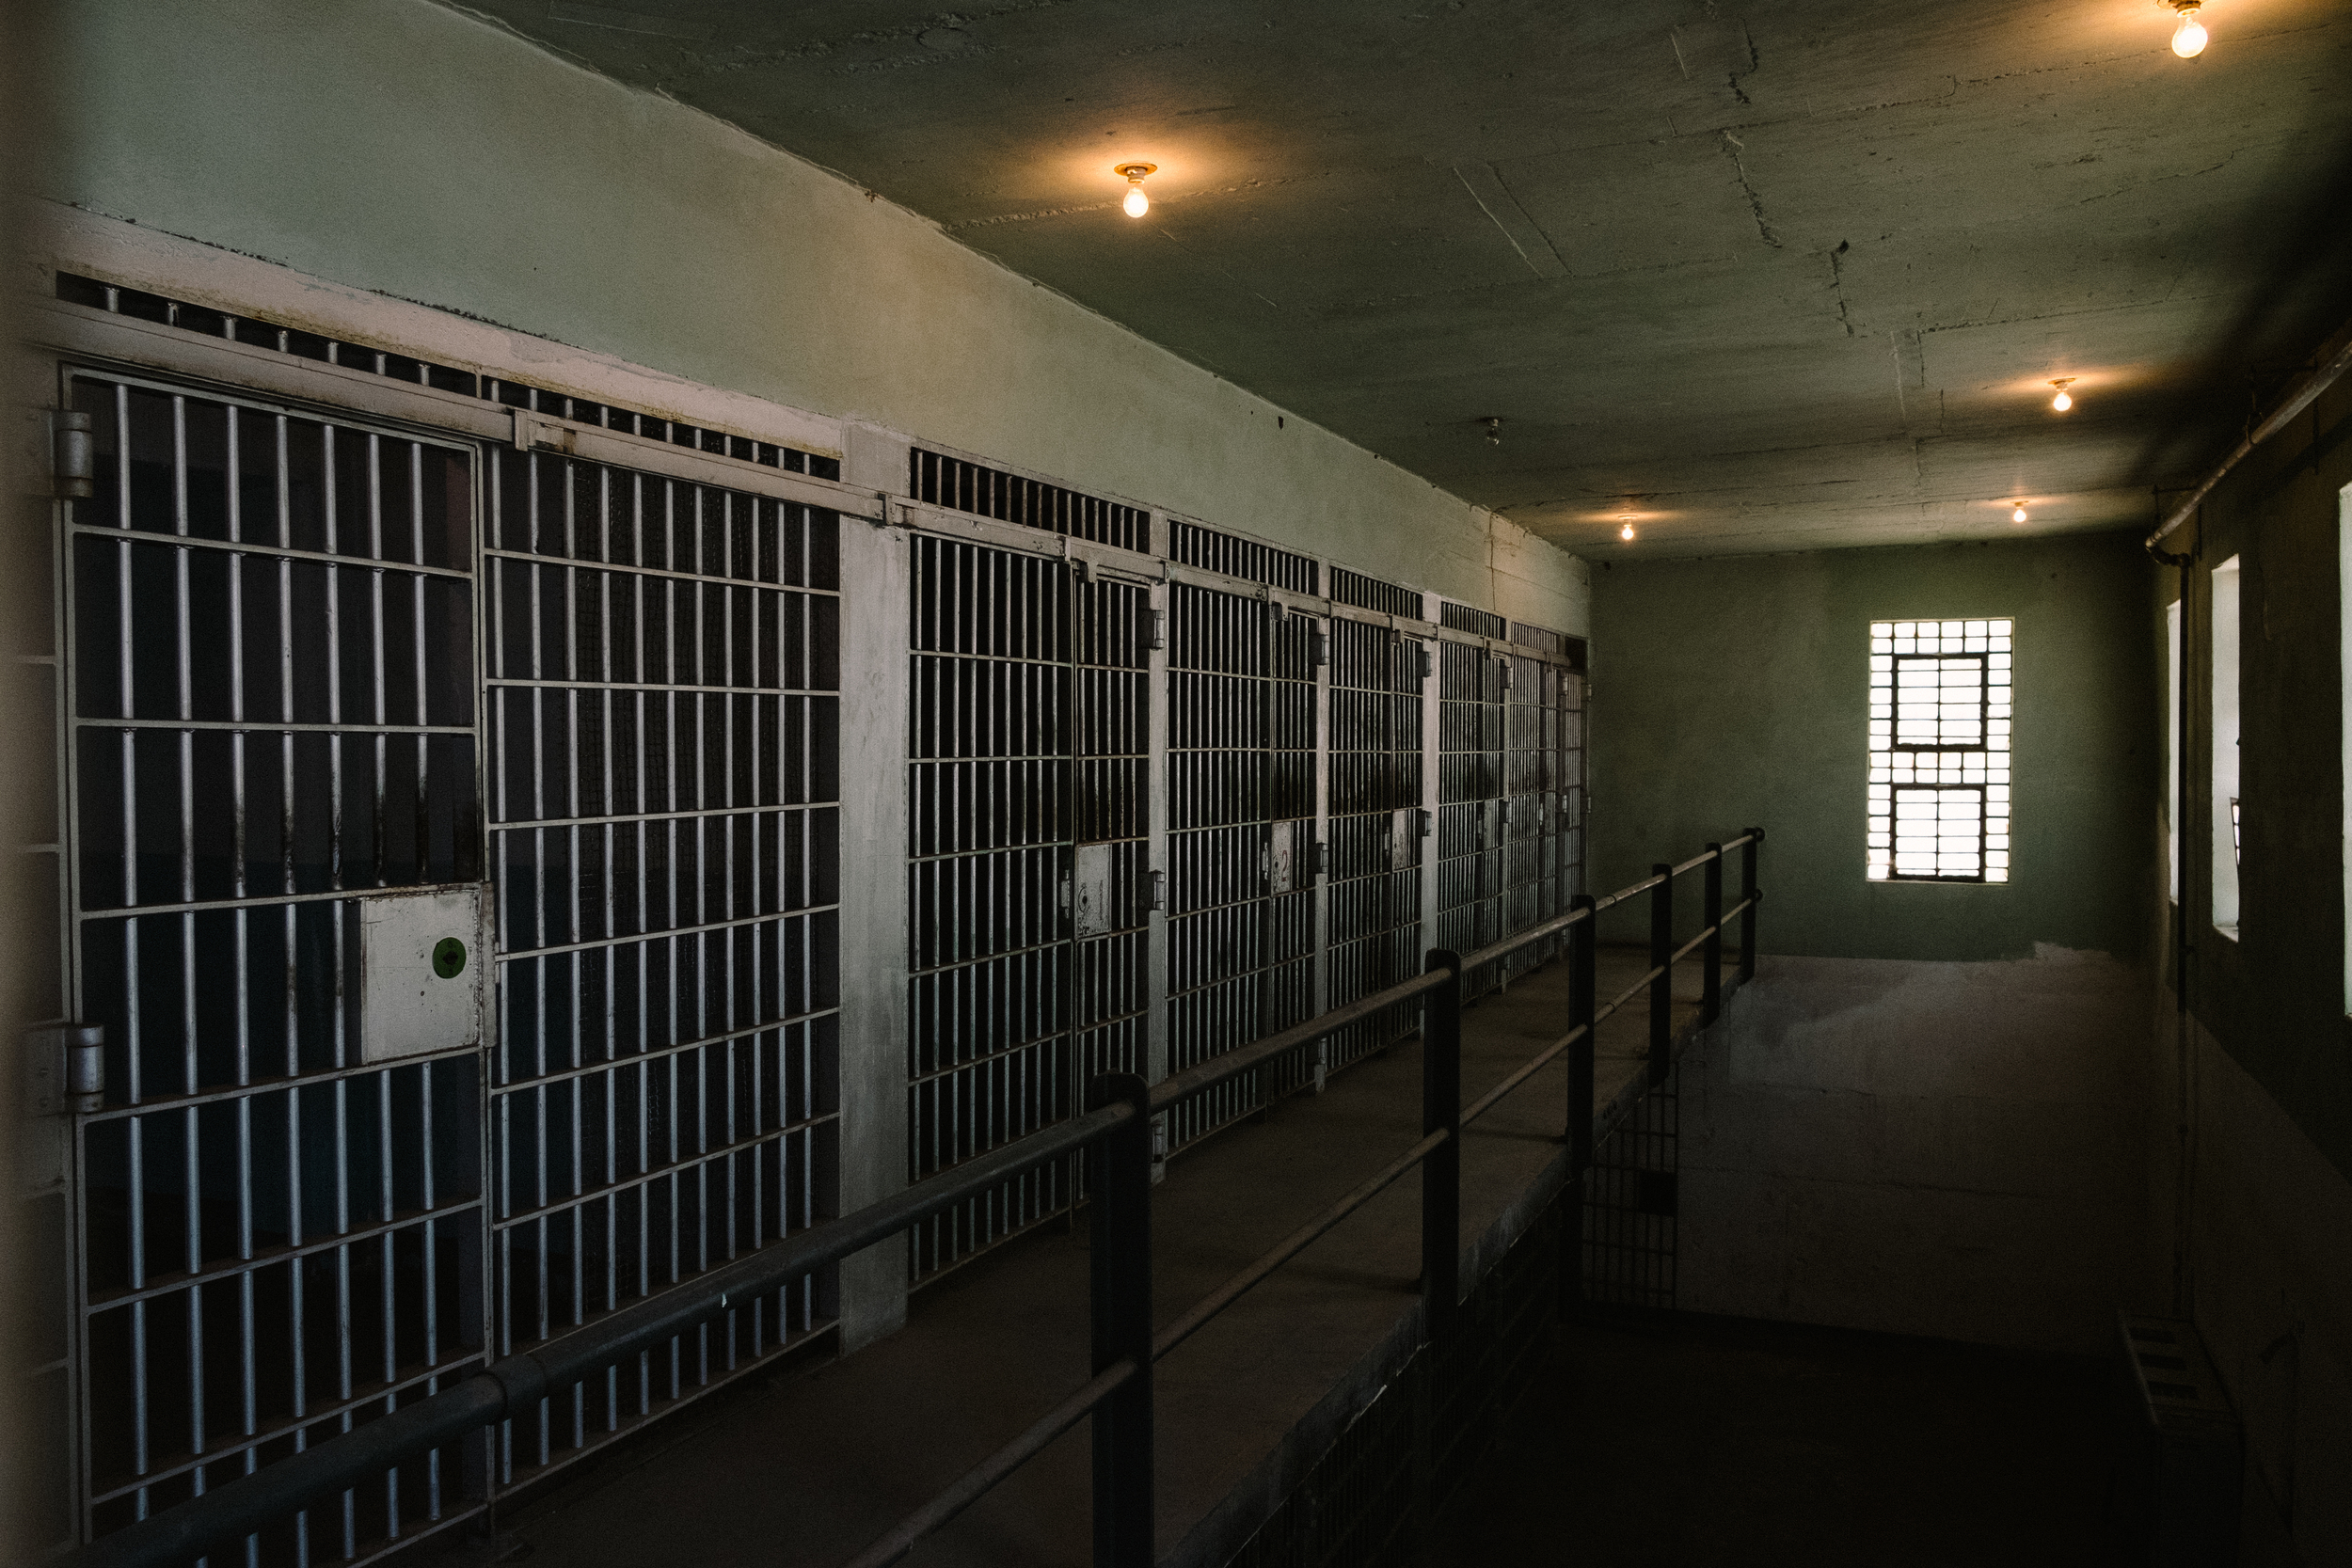 Despite the age of the exterior, parts of the prison were modernized as the prison was used until the early 1970s.